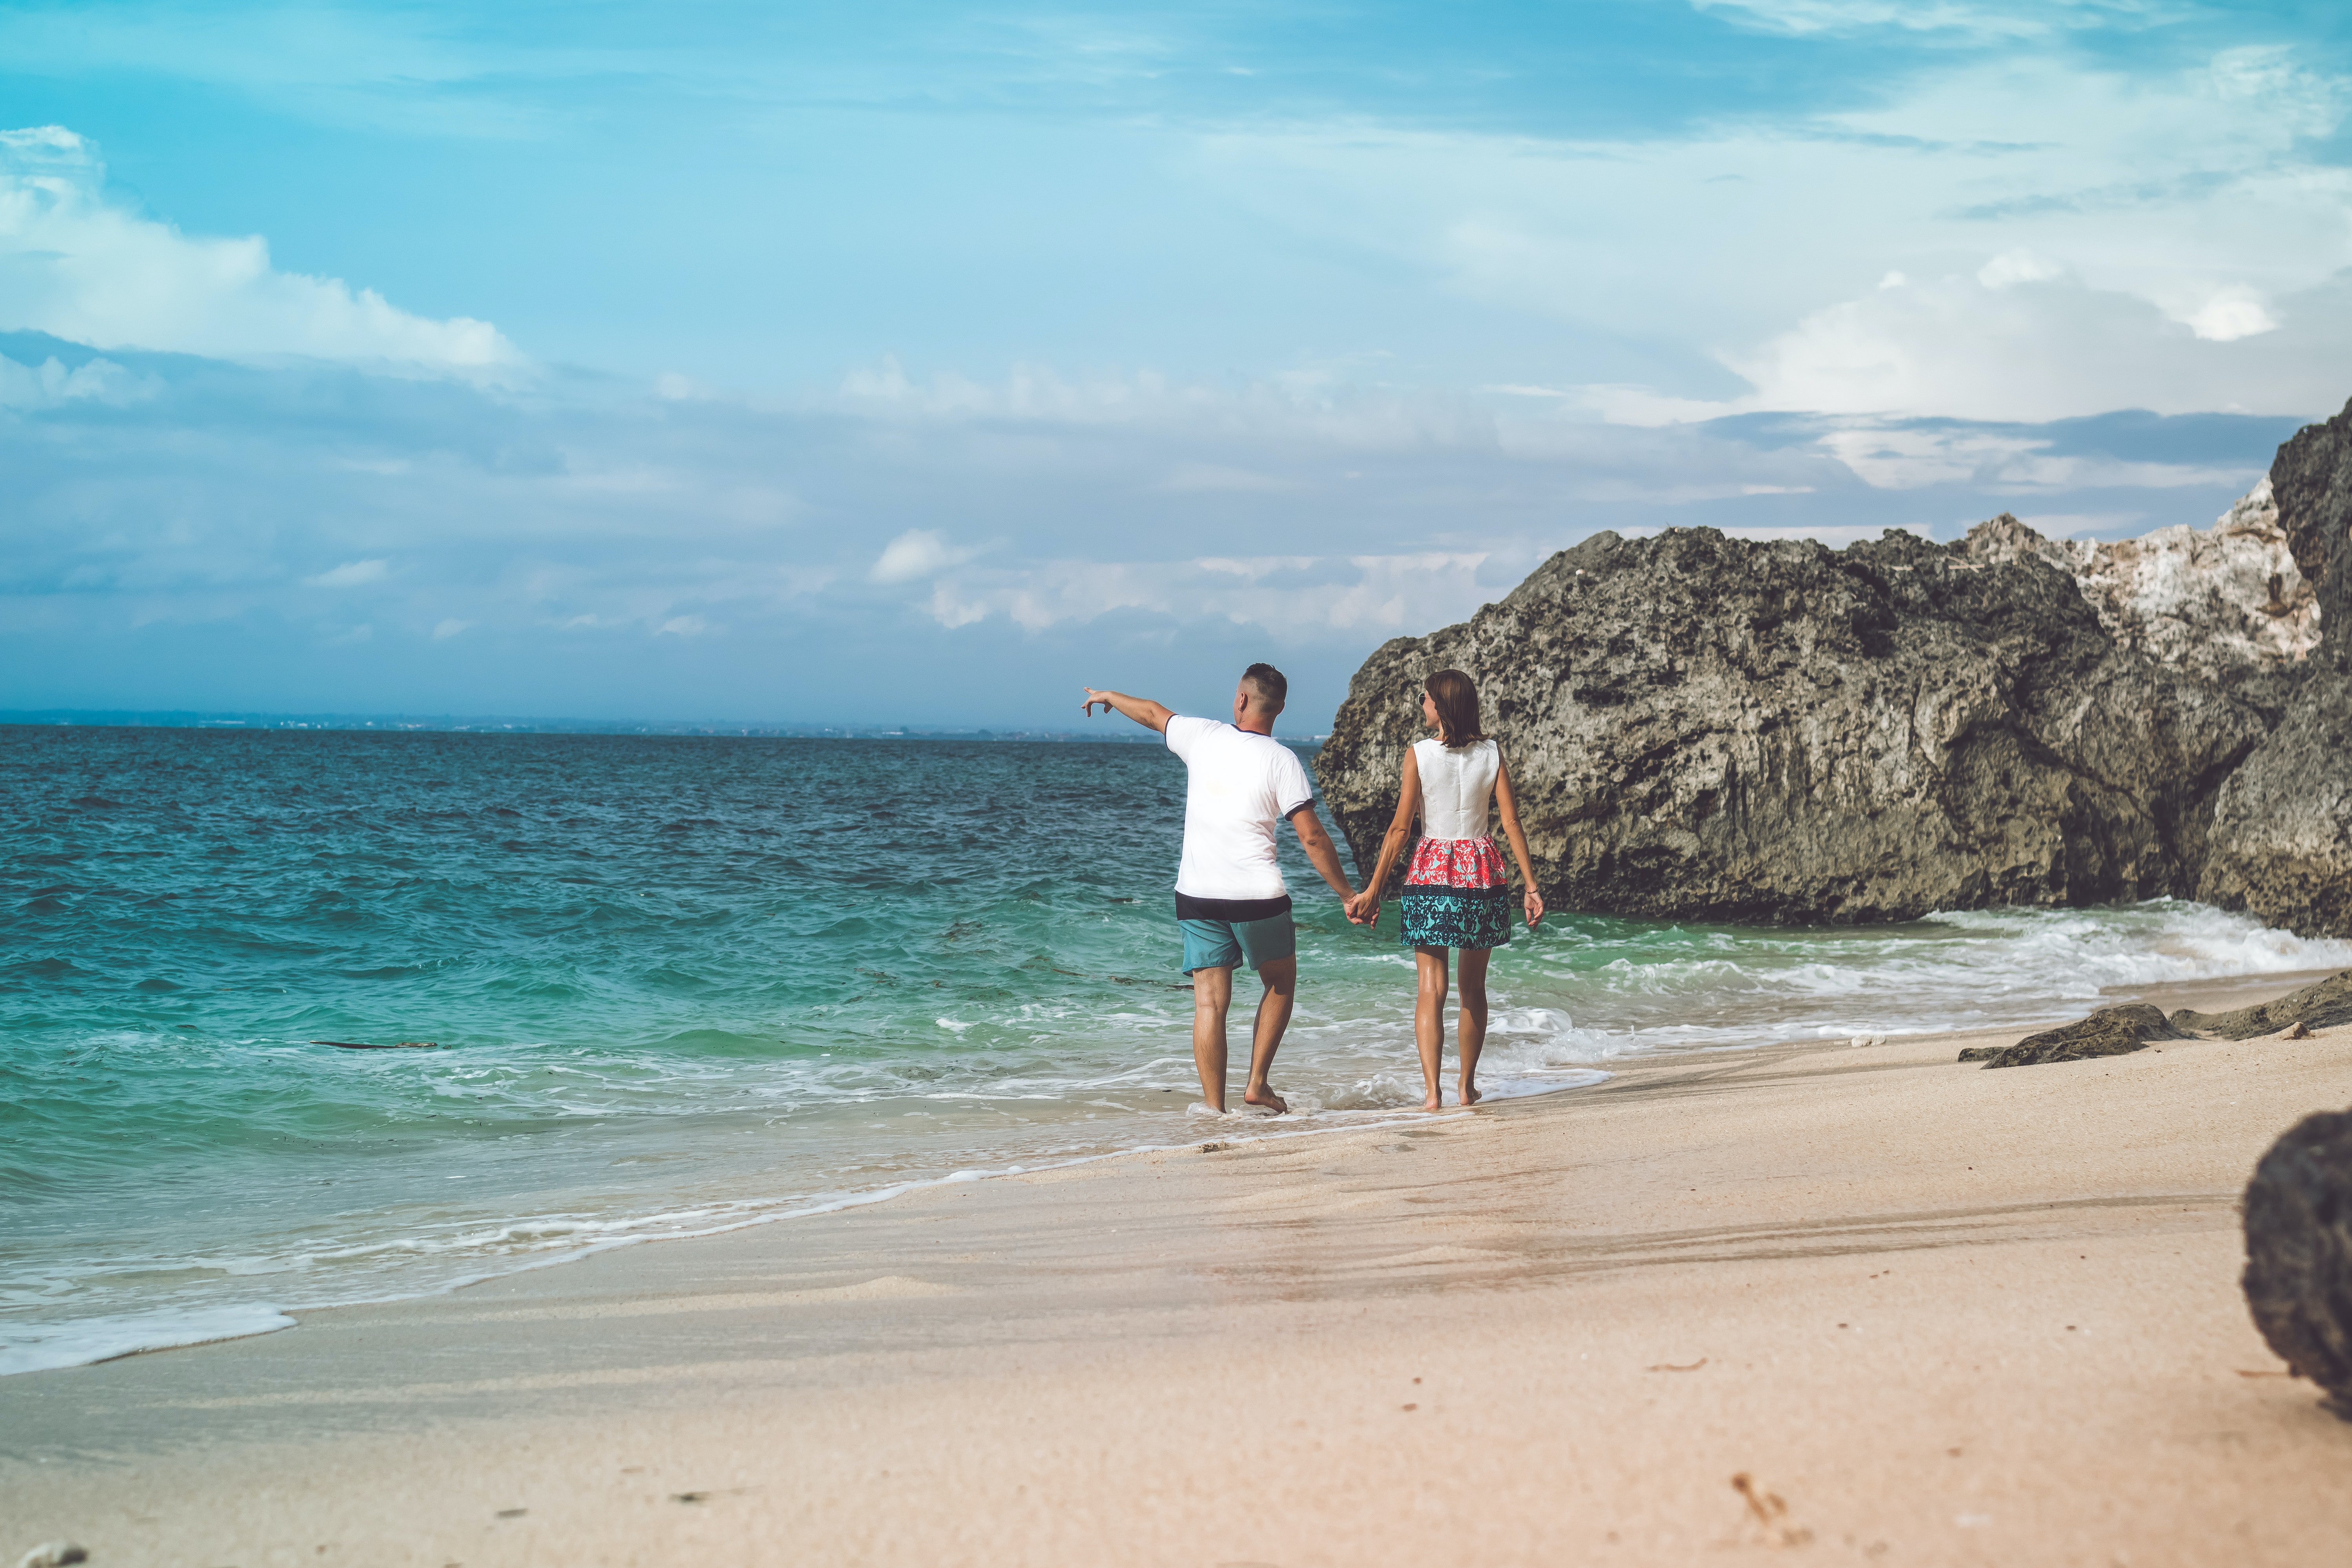 man and woman walking on seashore while holding hands during daytime